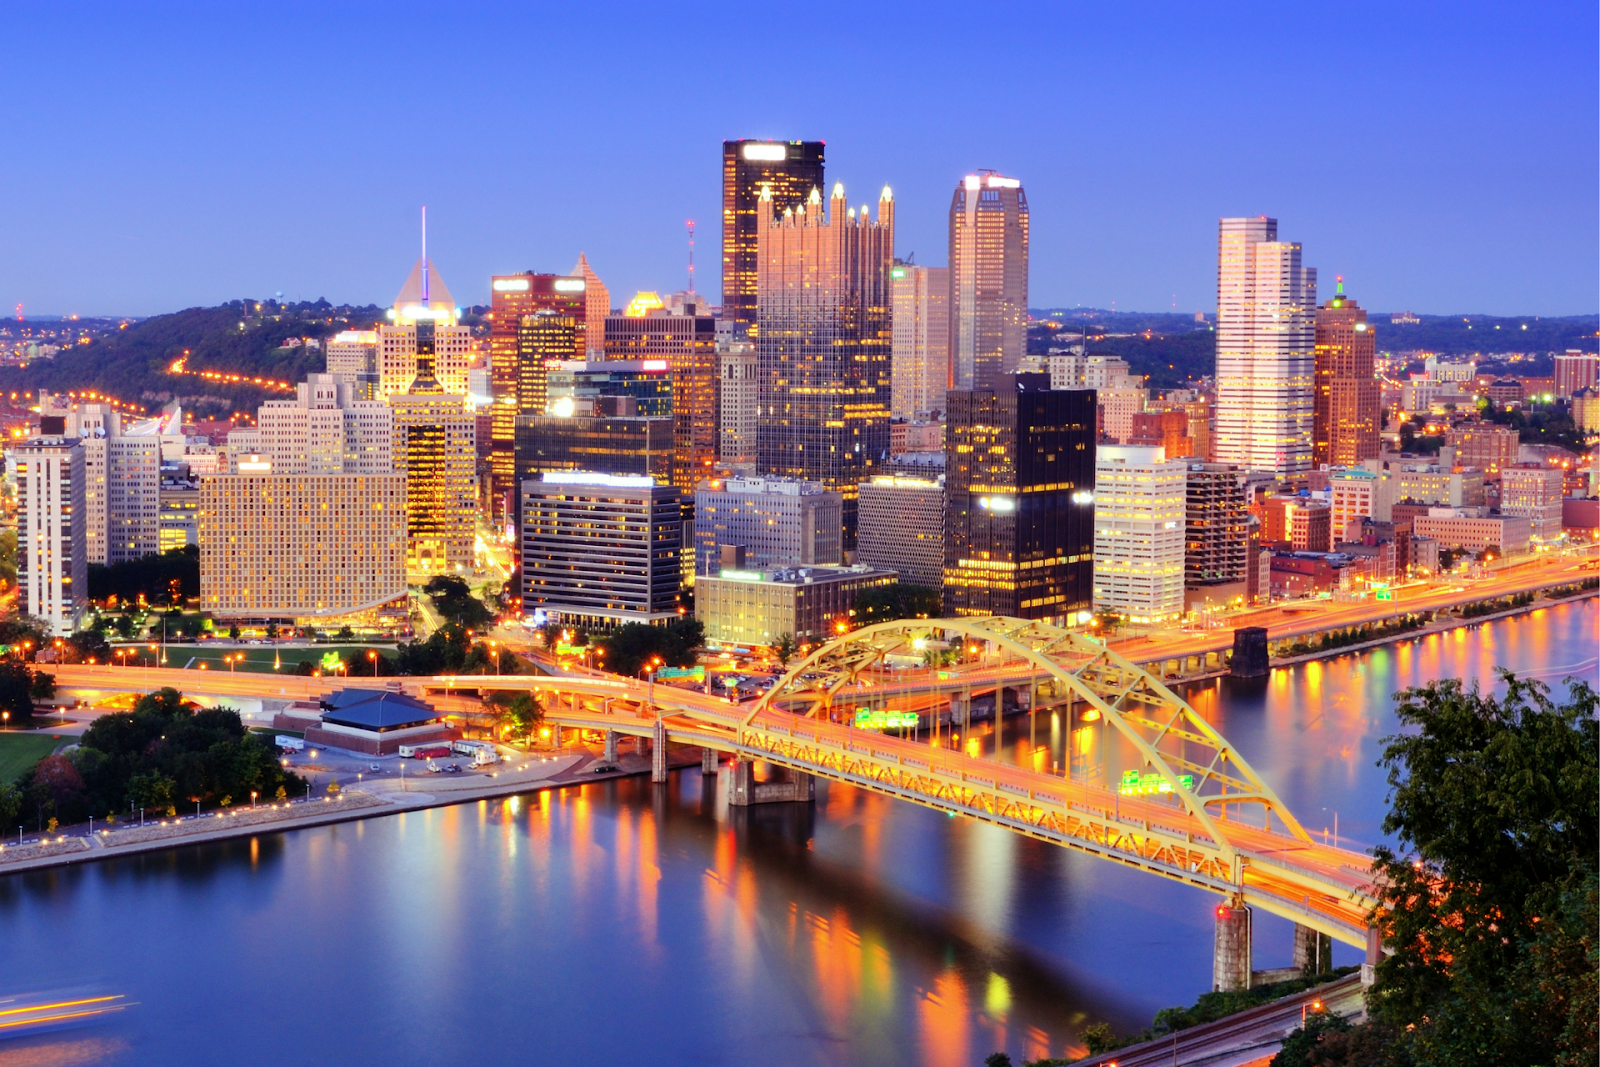 Top 4 Reasons Why Pittsburgh is a Great City for IT Job Seekers